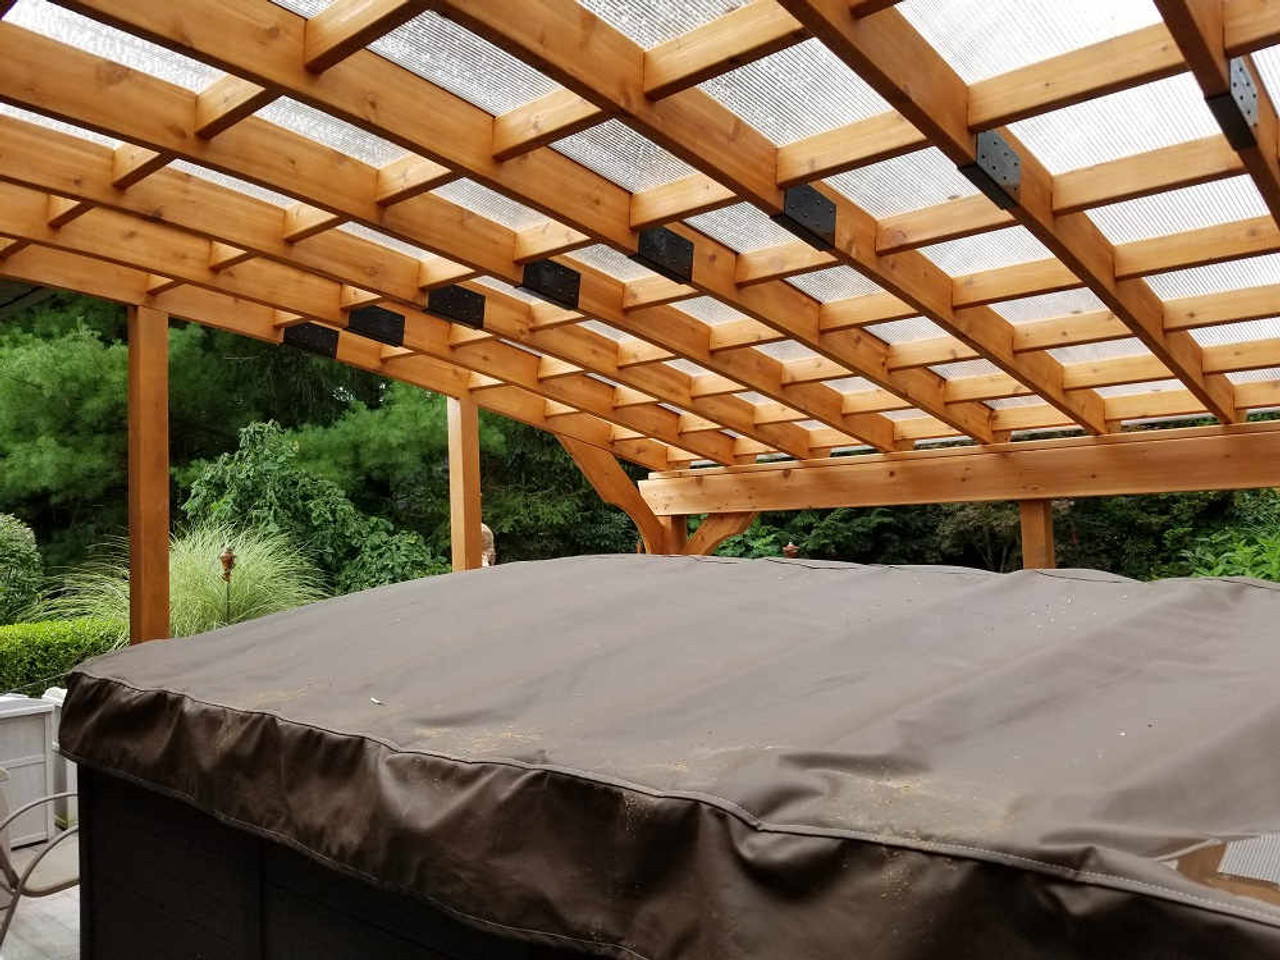 12x18 Custom Arched Cedar Pergola Kit Outdoor  - Slingerlands, New York